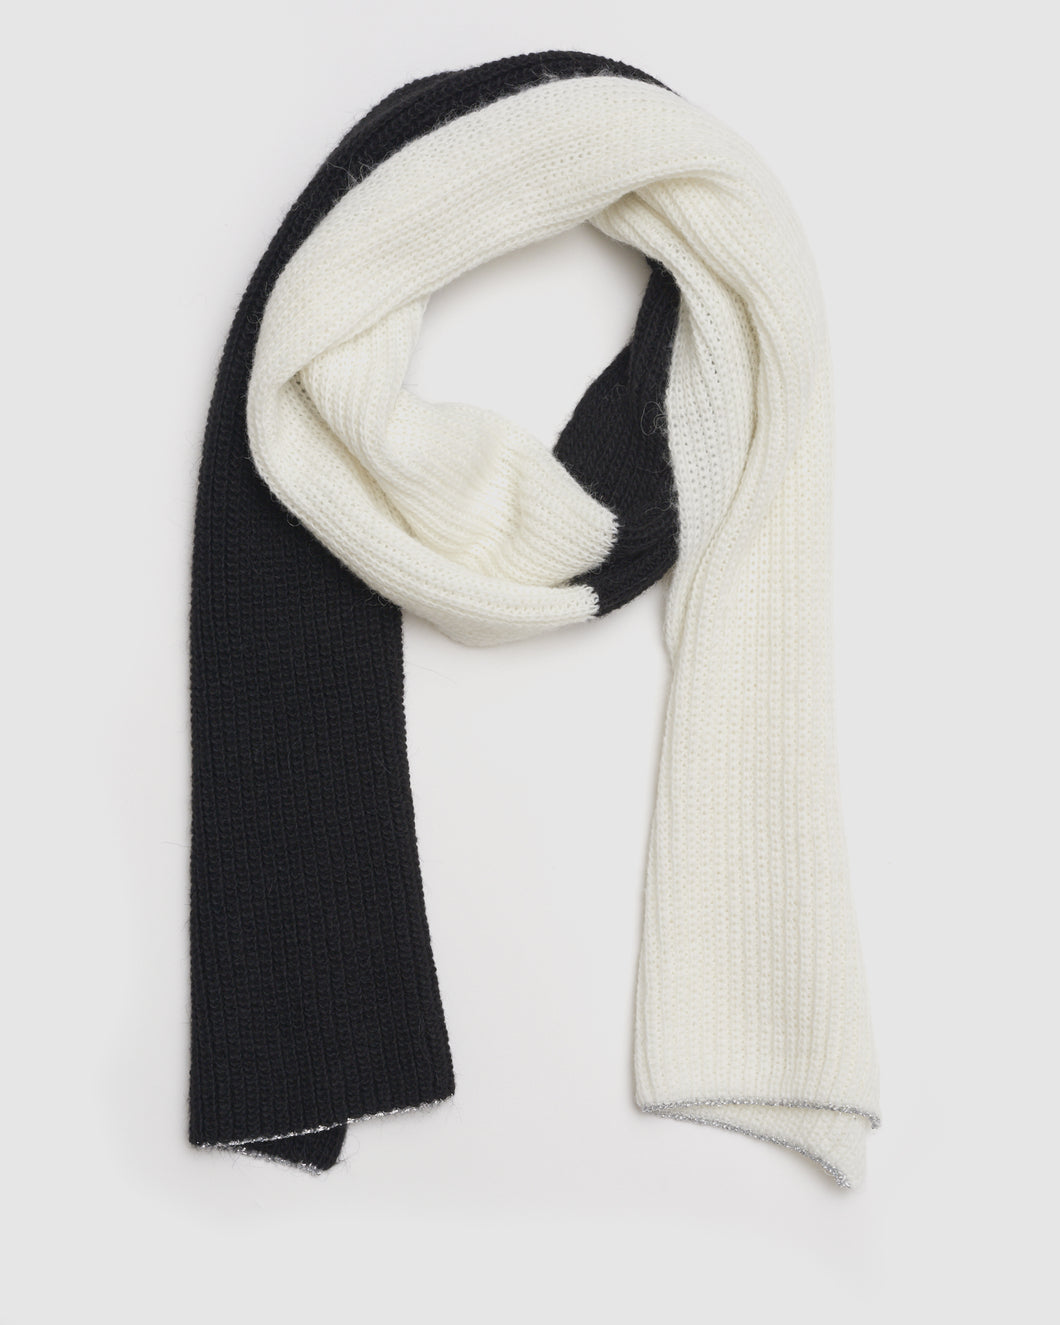 Kate and Confusion ladies wool and alpaca knit scarf in black,ivory and silver